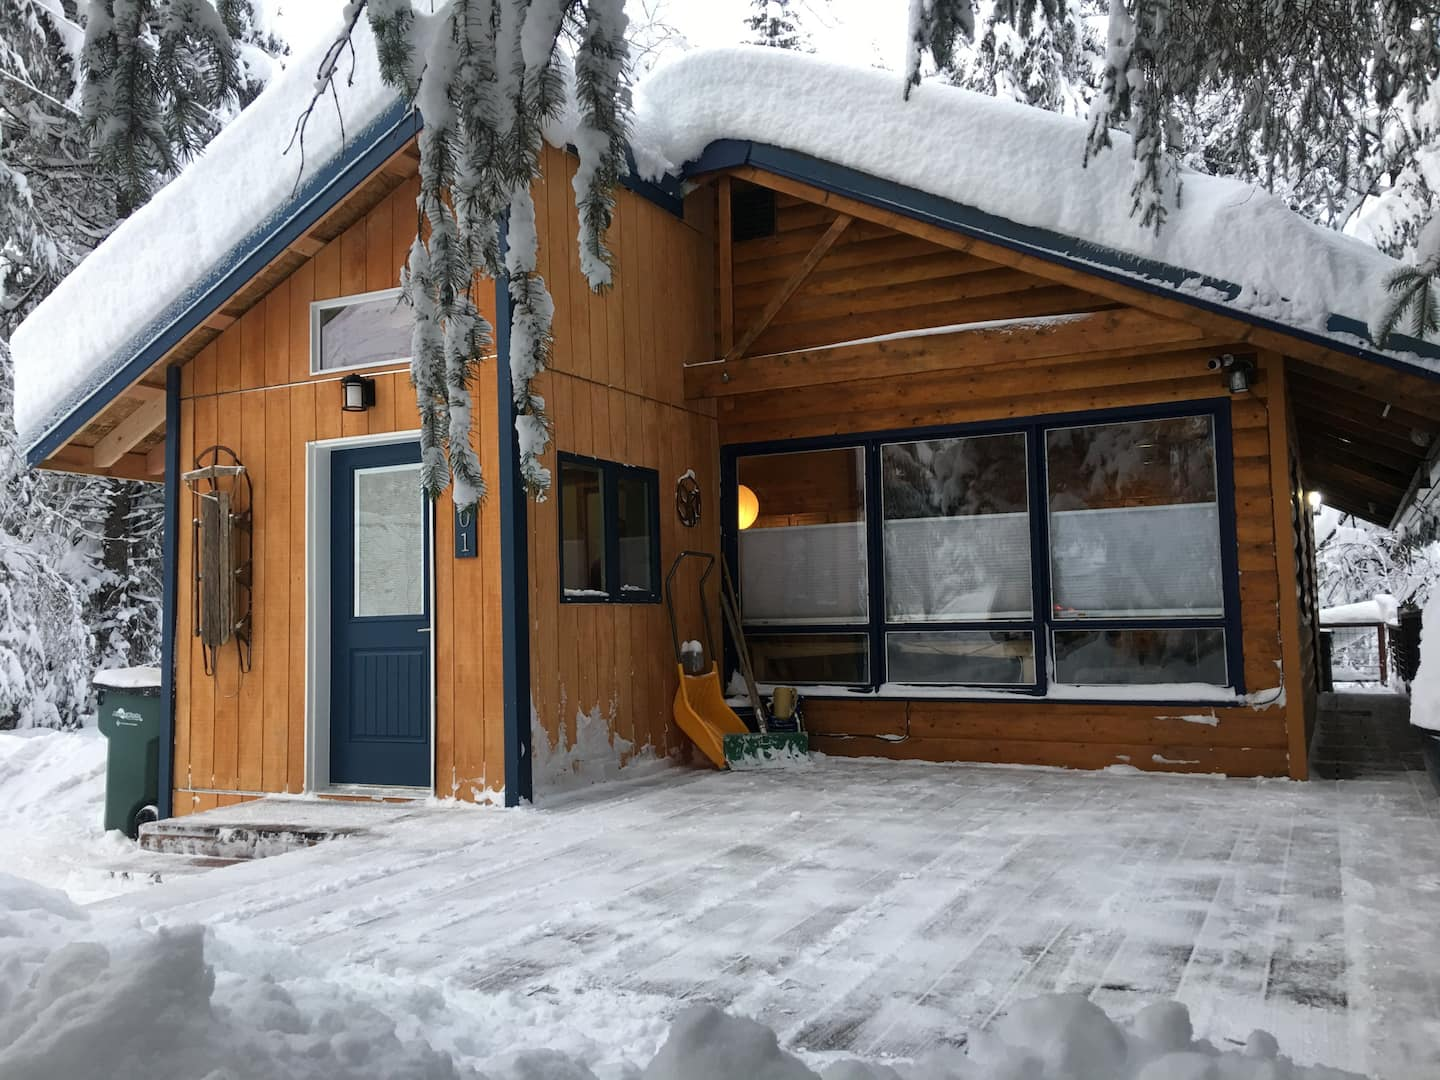 Alaska Cabin Airbnb With Hot Tub Winter